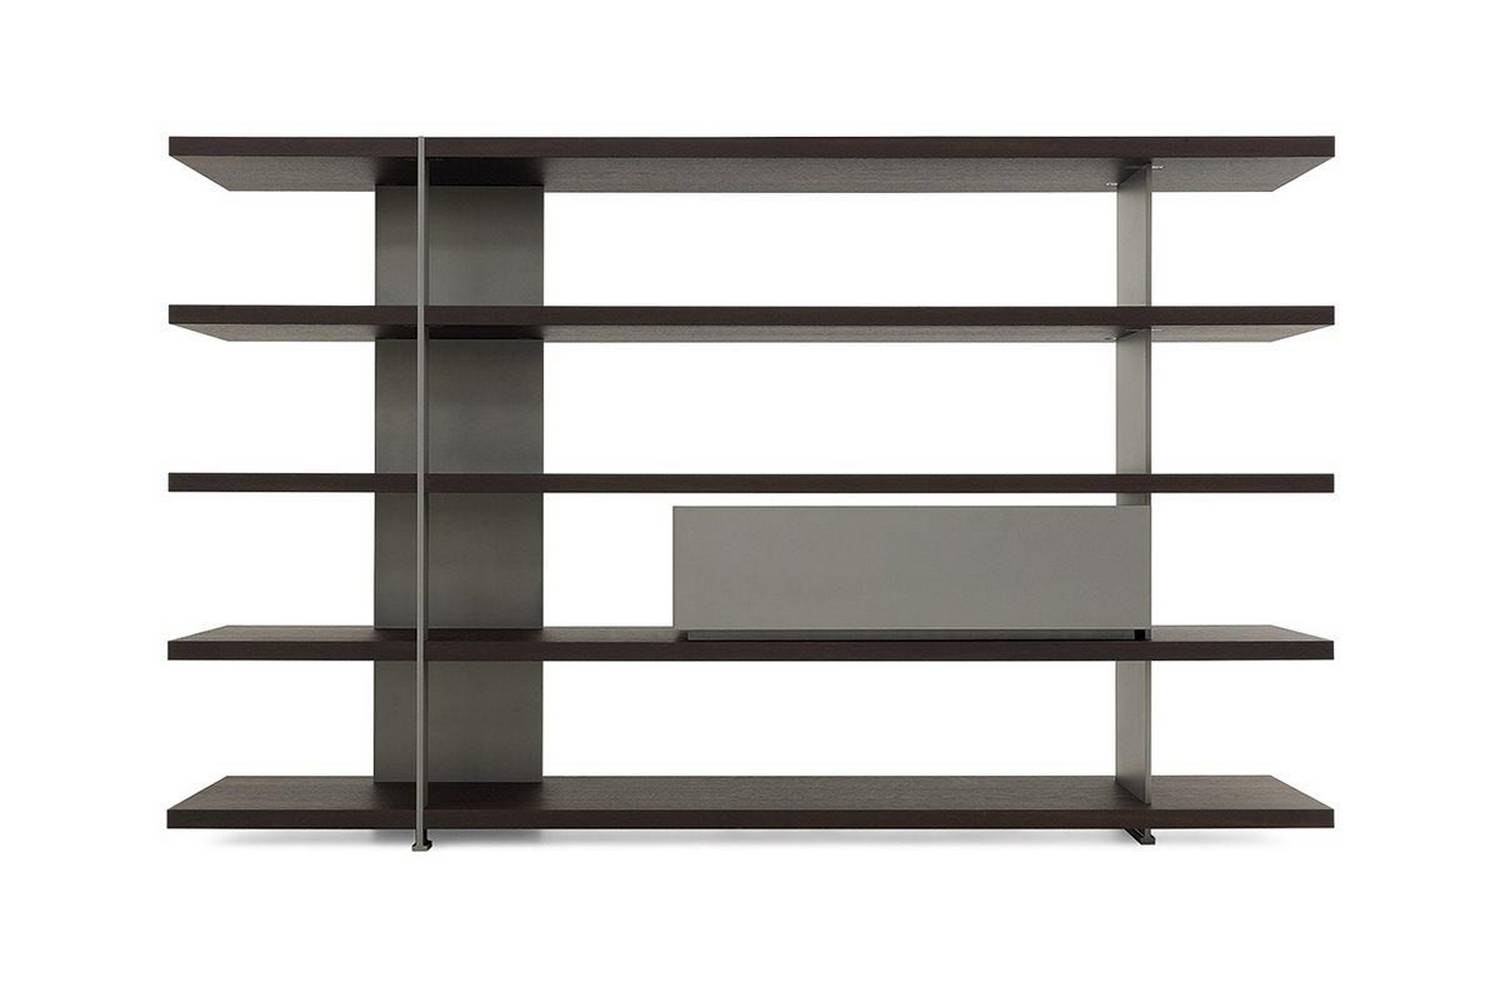 Bristol System Bookshelf by J. M. Massaud for Poliform